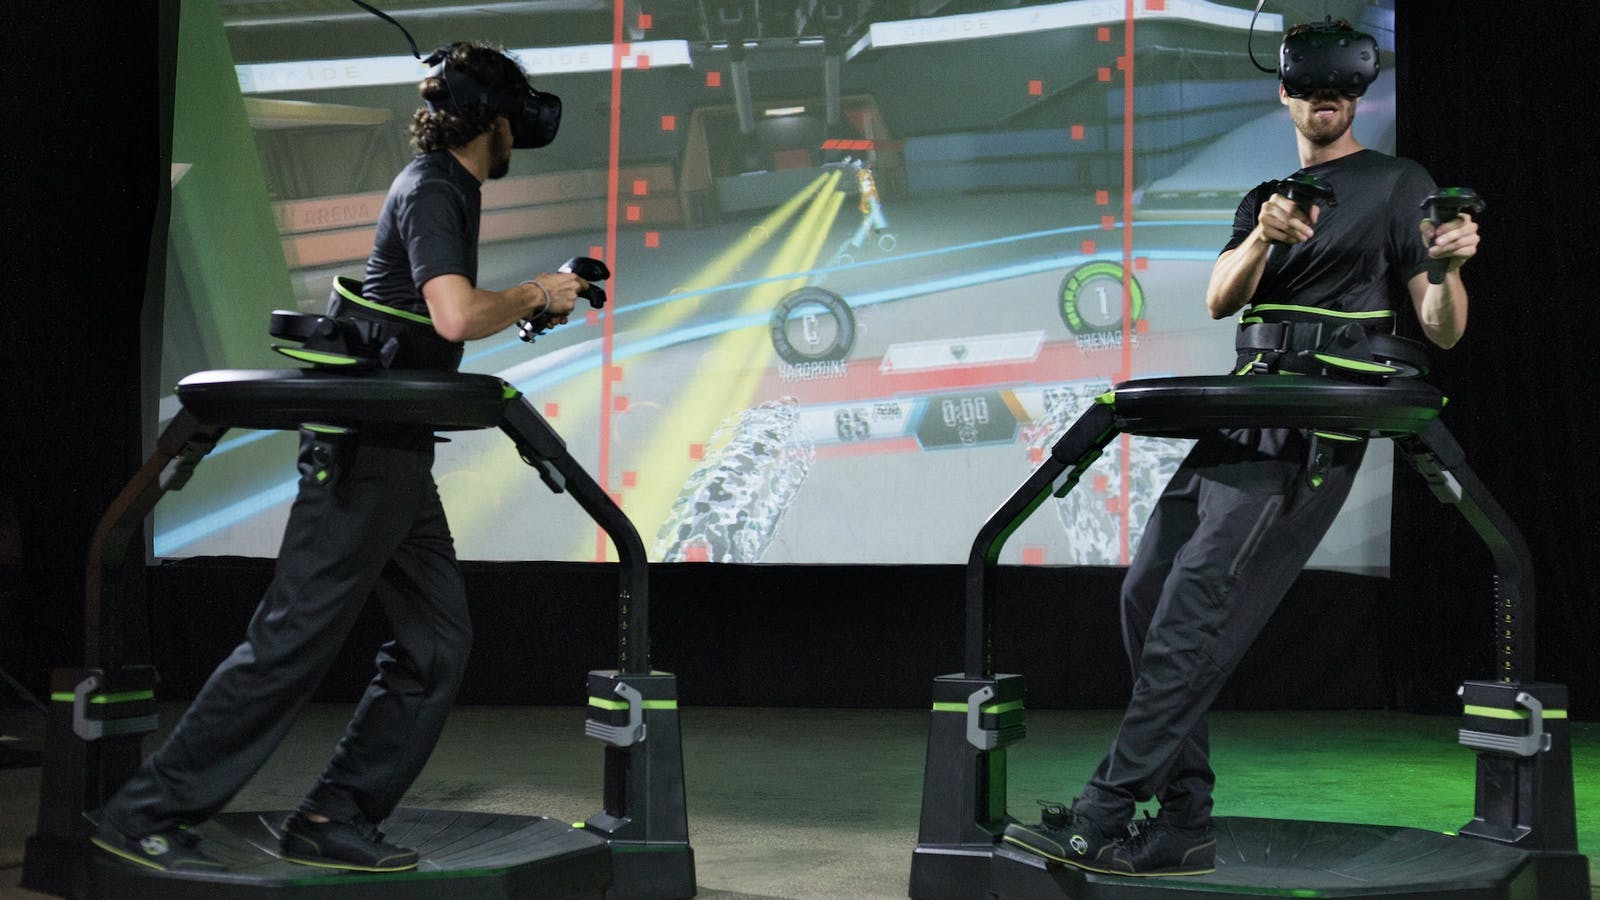 Two VR players using Virtuix Omni Pro treadmills and HTC Vive headsets. Photo by Virtuix